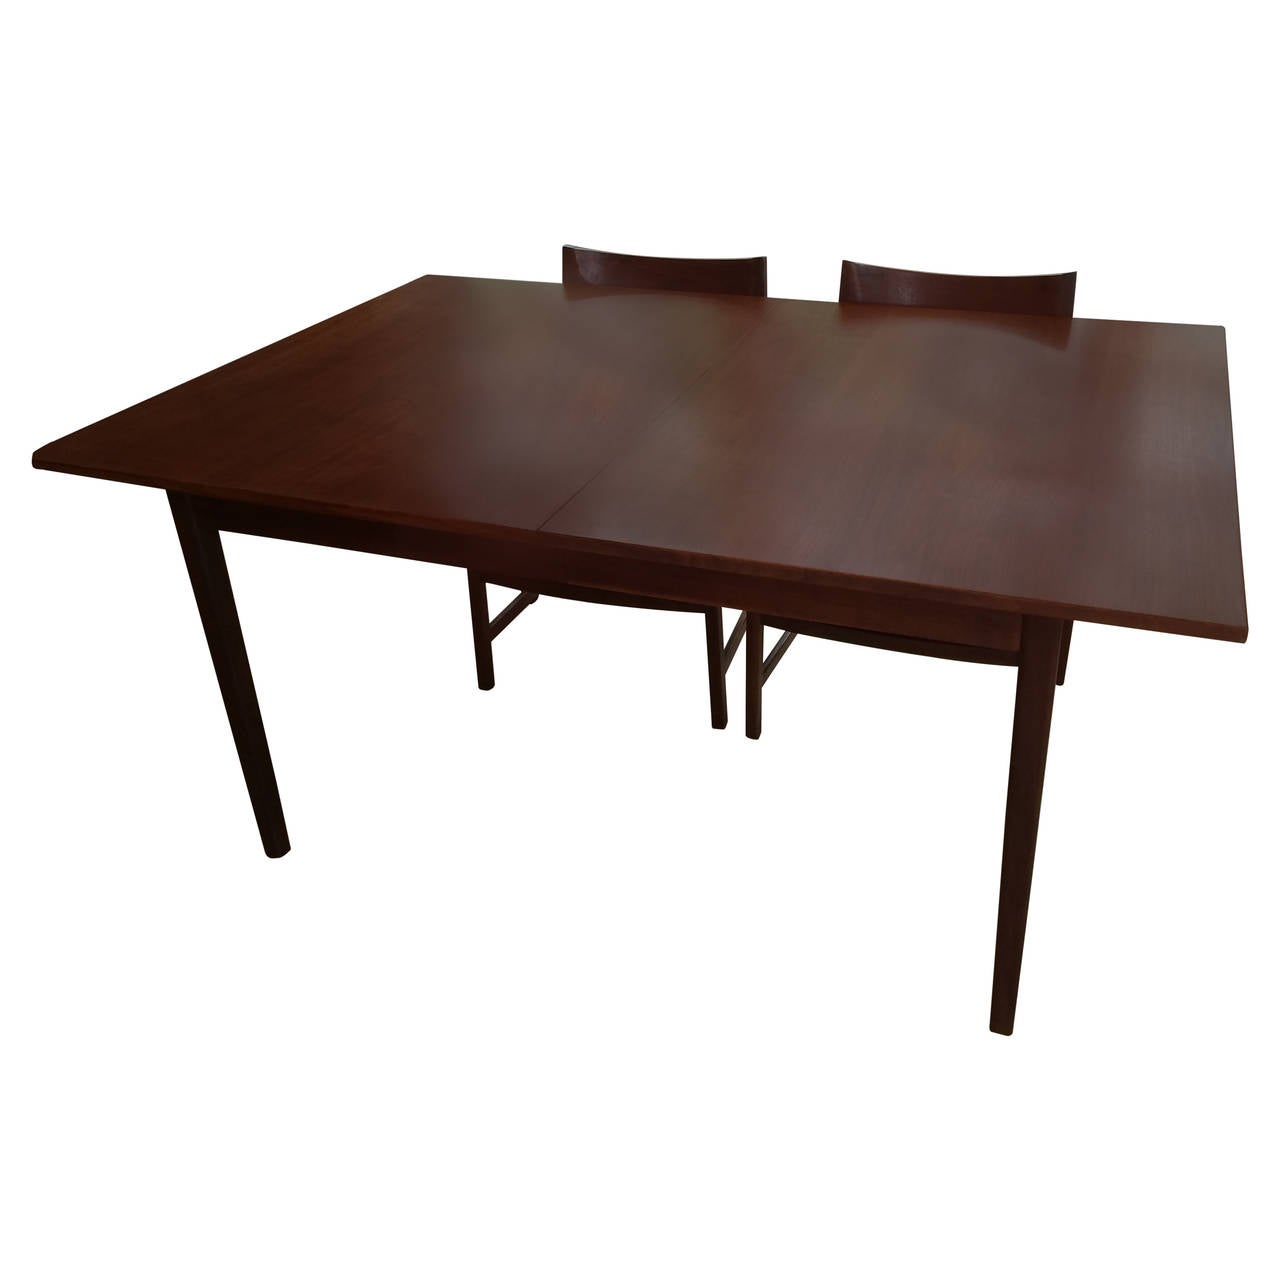 danish midcentury walnut dining table with six matching walnut chairs